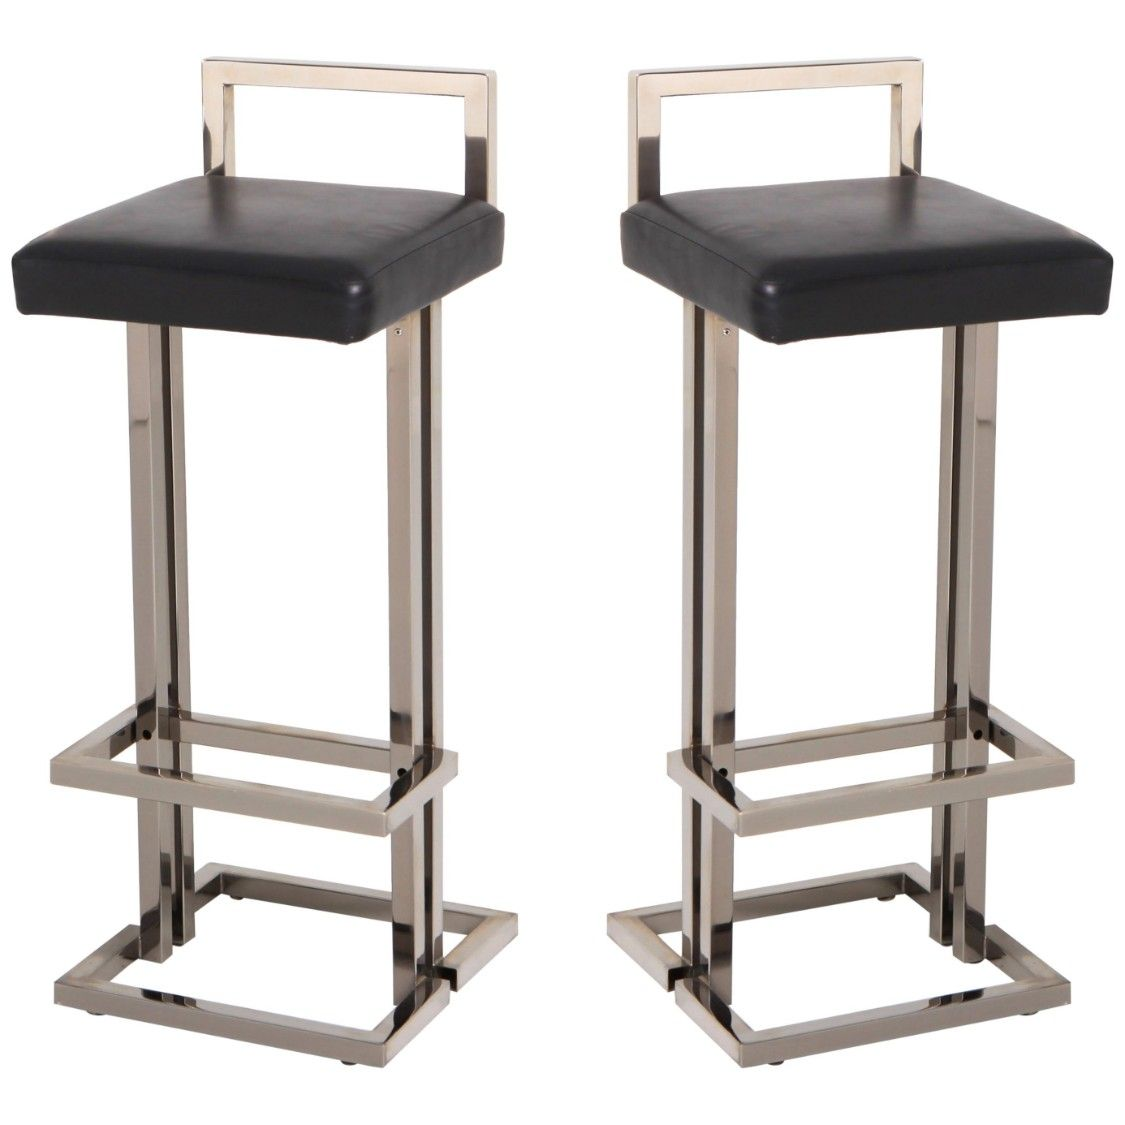 Wondrous Maison Jansen Chrome And Black Leather Bar Stools Gmtry Best Dining Table And Chair Ideas Images Gmtryco